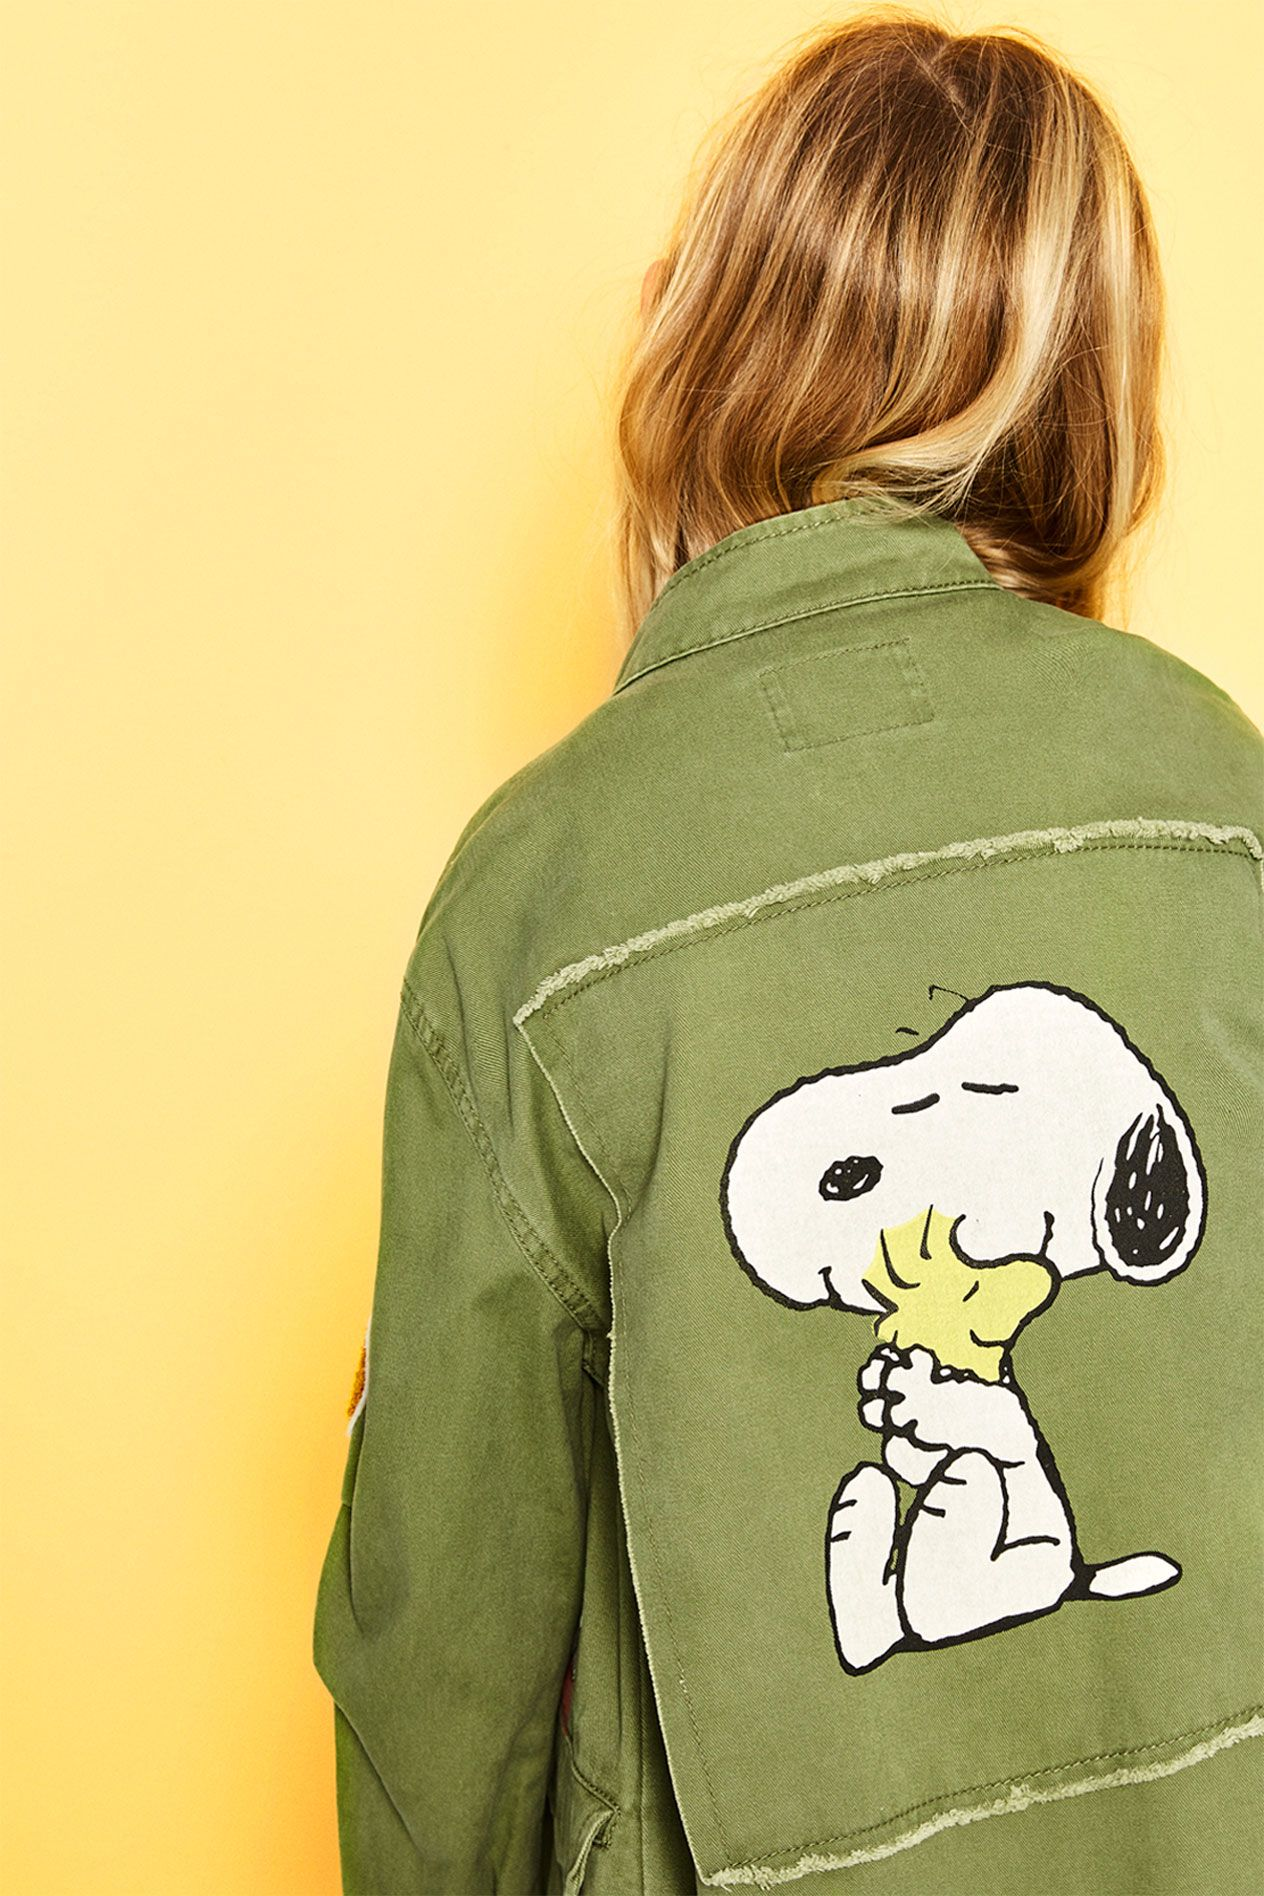 ZARA - #zaraeditorial - 14 years - GIRL | 4 - SNOOPY COLLECTION